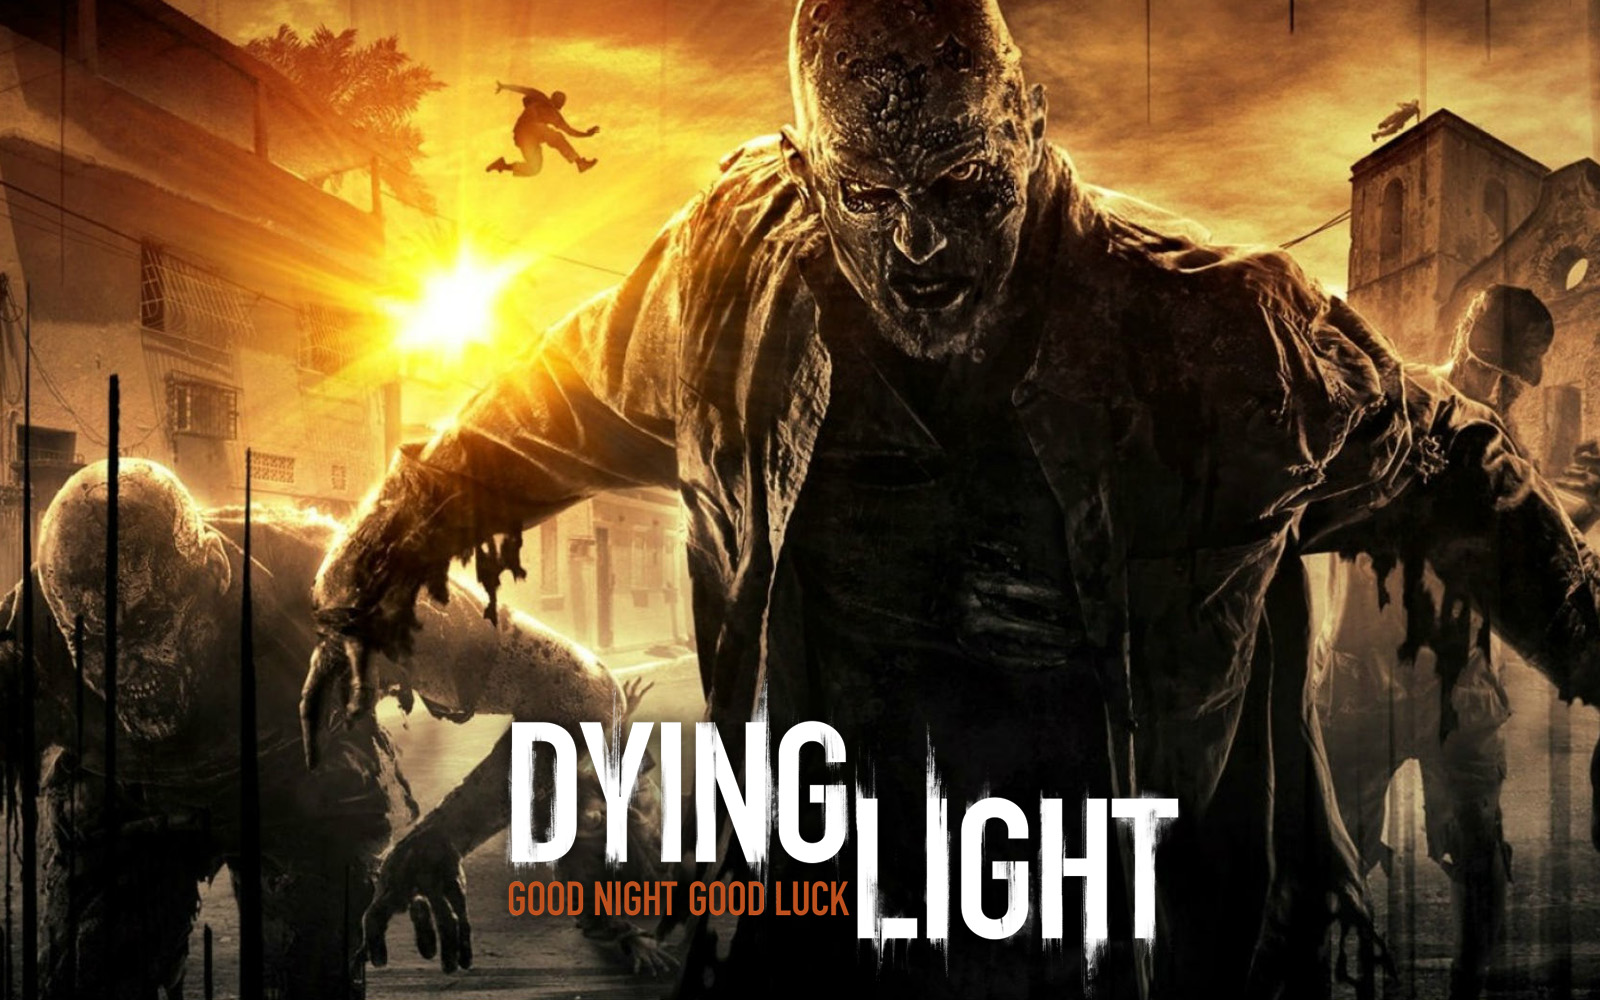 Dying Dying Light 2 354421 Hd Wallpaper Backgrounds Download